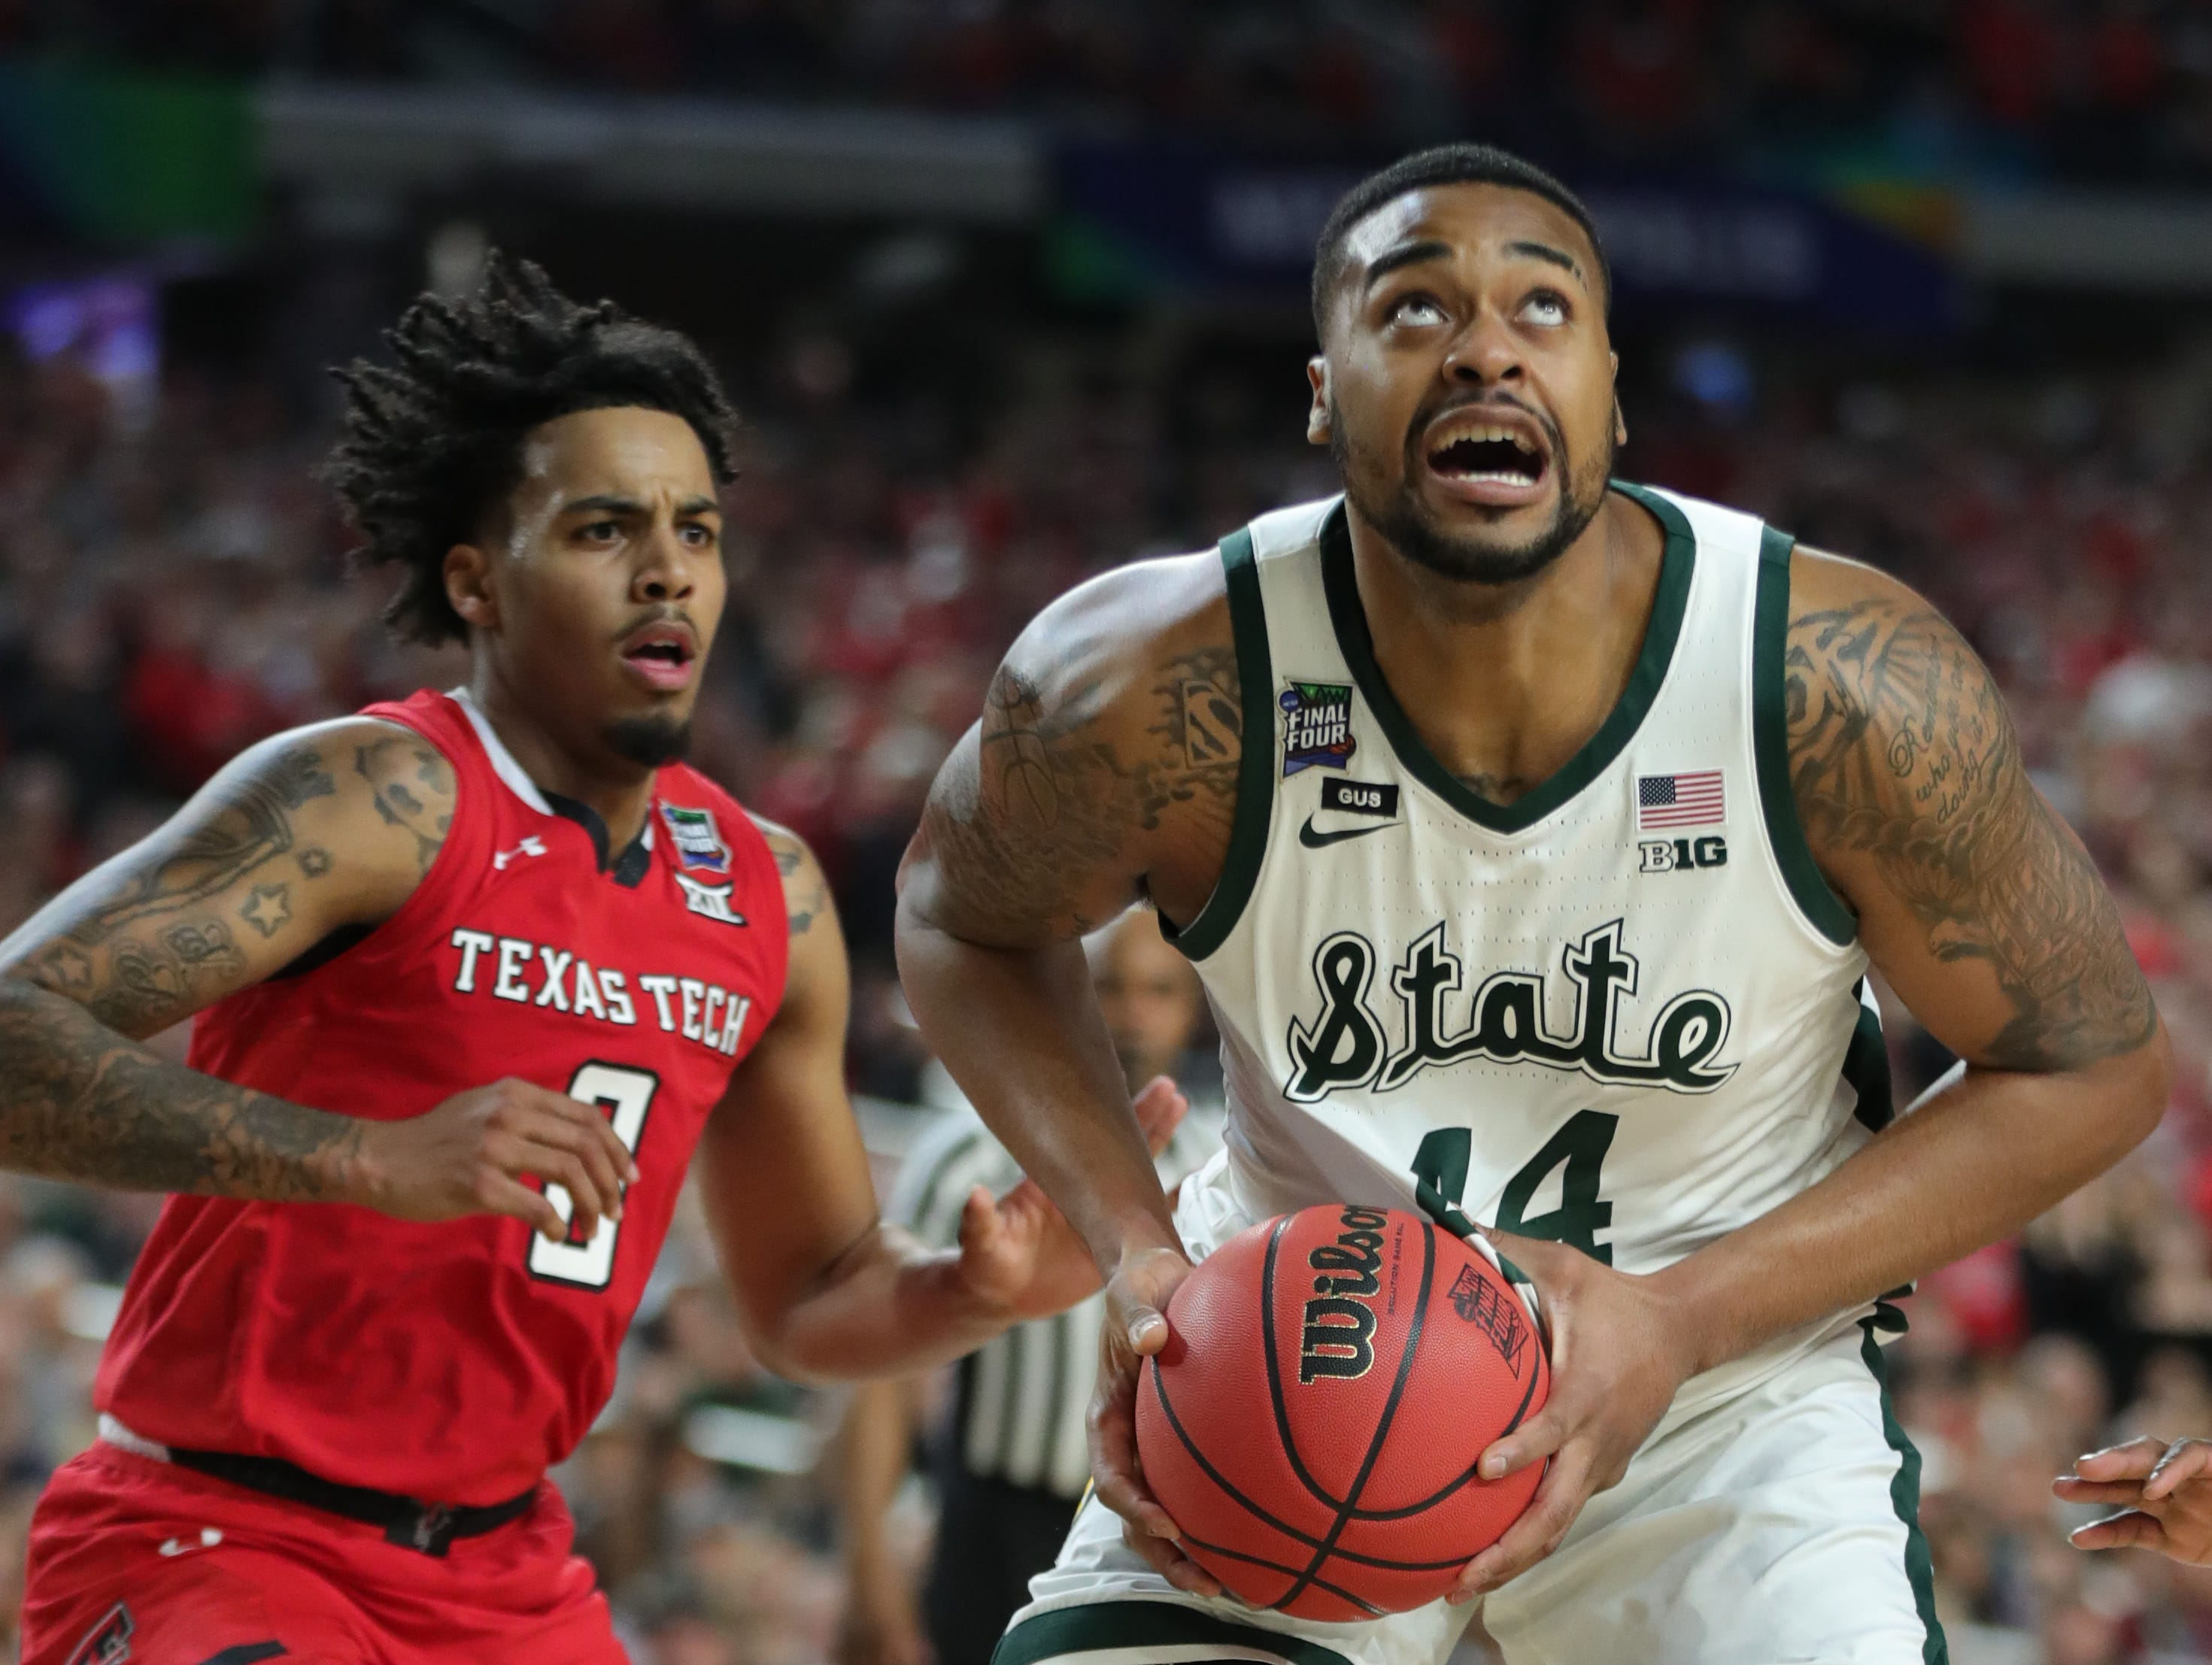 Michigan State Nick Ward (44) moves the ball around Texas Tech guard Kyler Edwards (0) in the second half of the Final Four game at U.S. Bank Stadium in Minneapolis, Minnesota on Saturday, April 06, 2019.